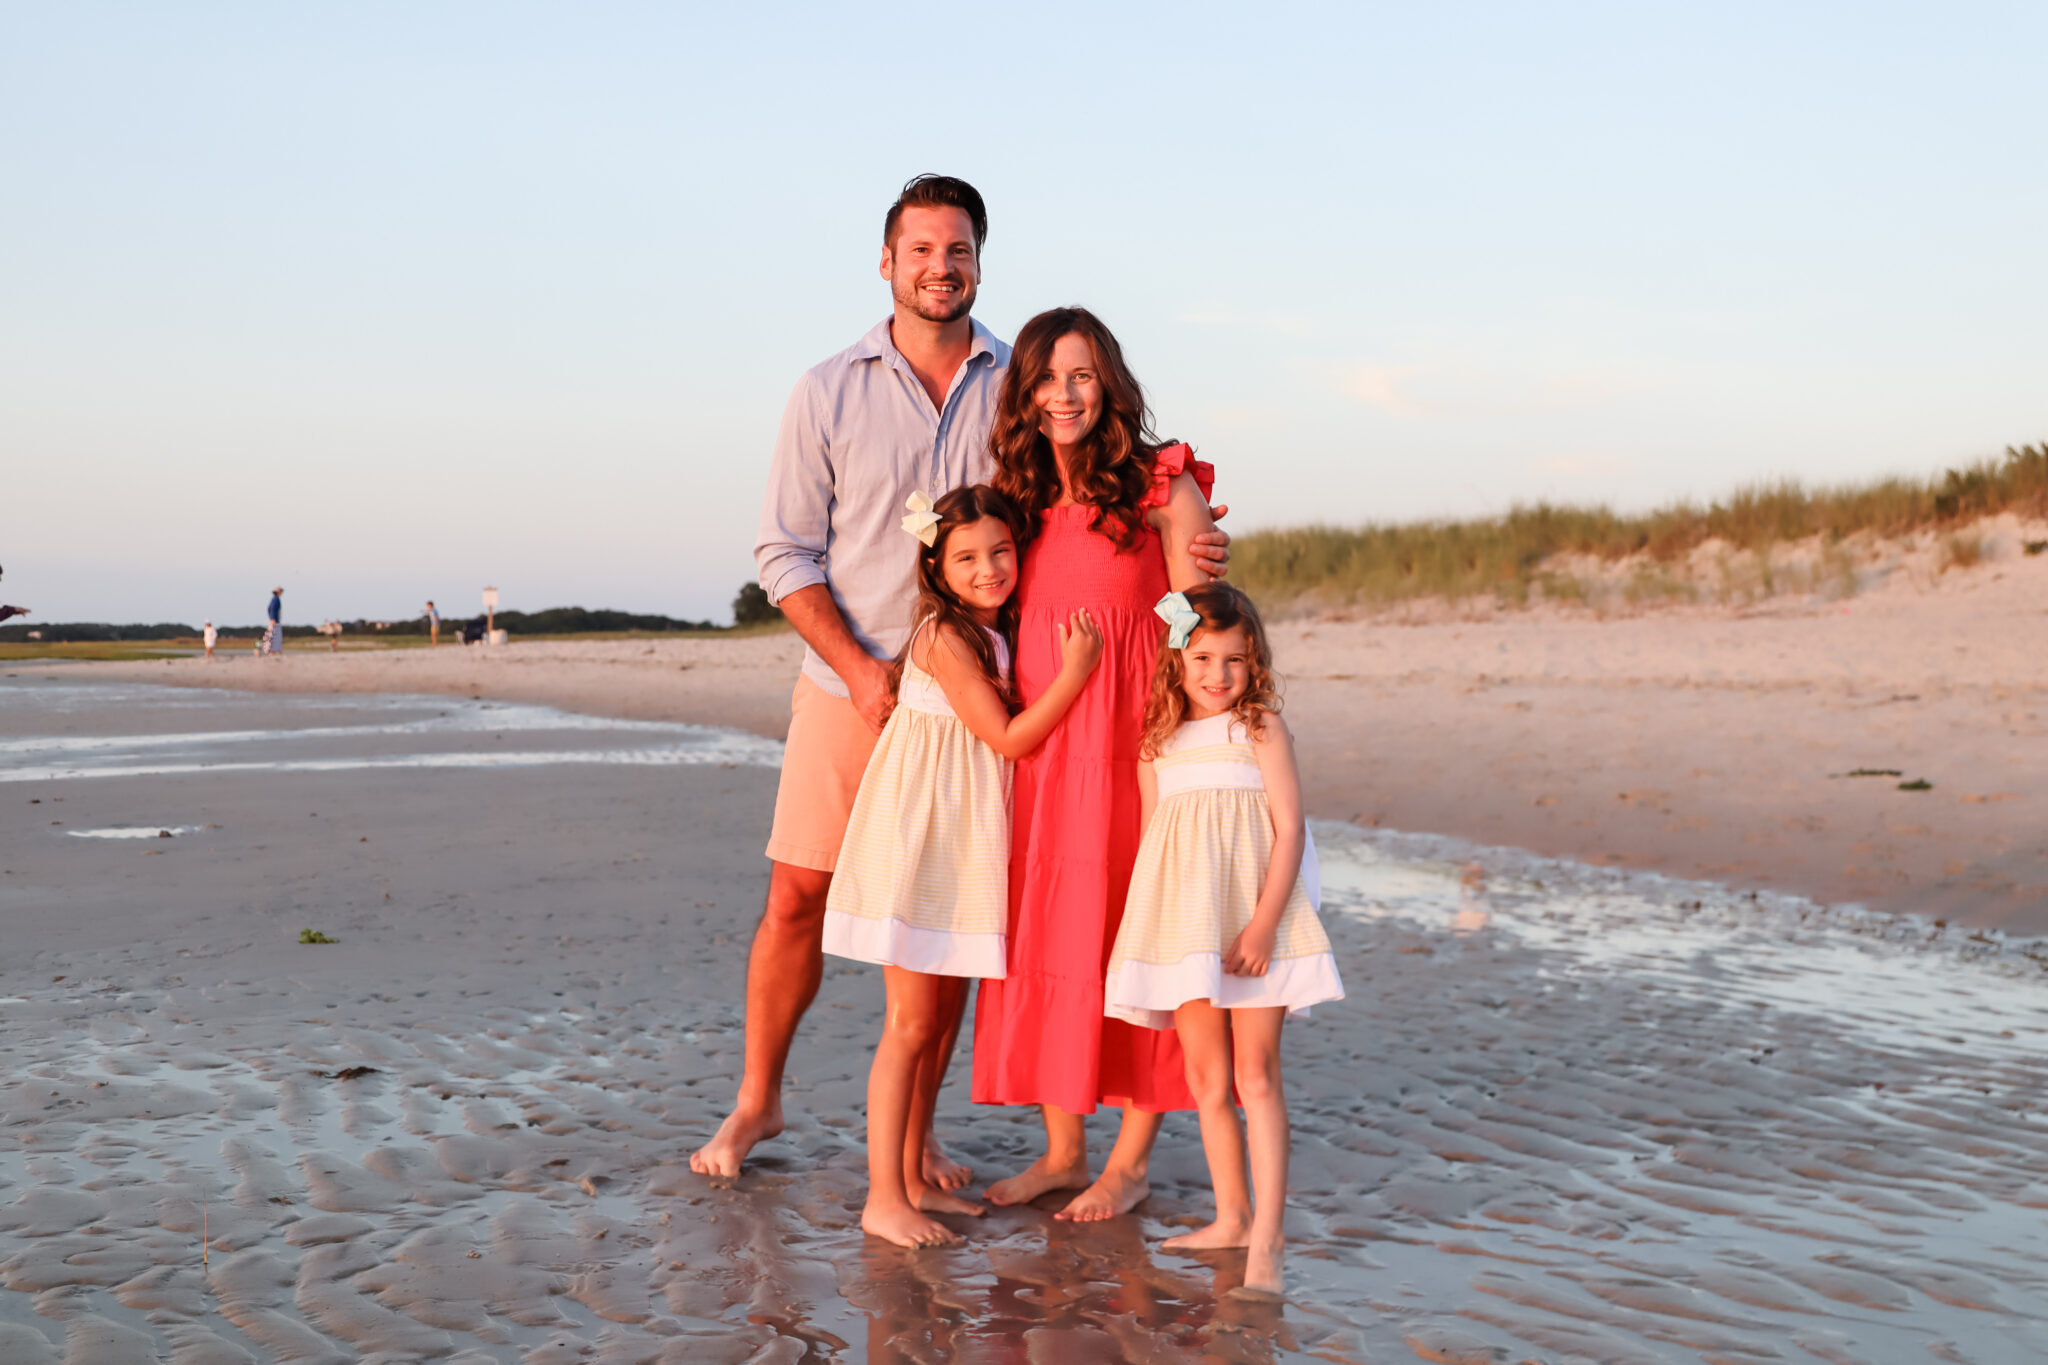 Family Photo at Skaket Beach by Brie Anderson Cape Cod Photography